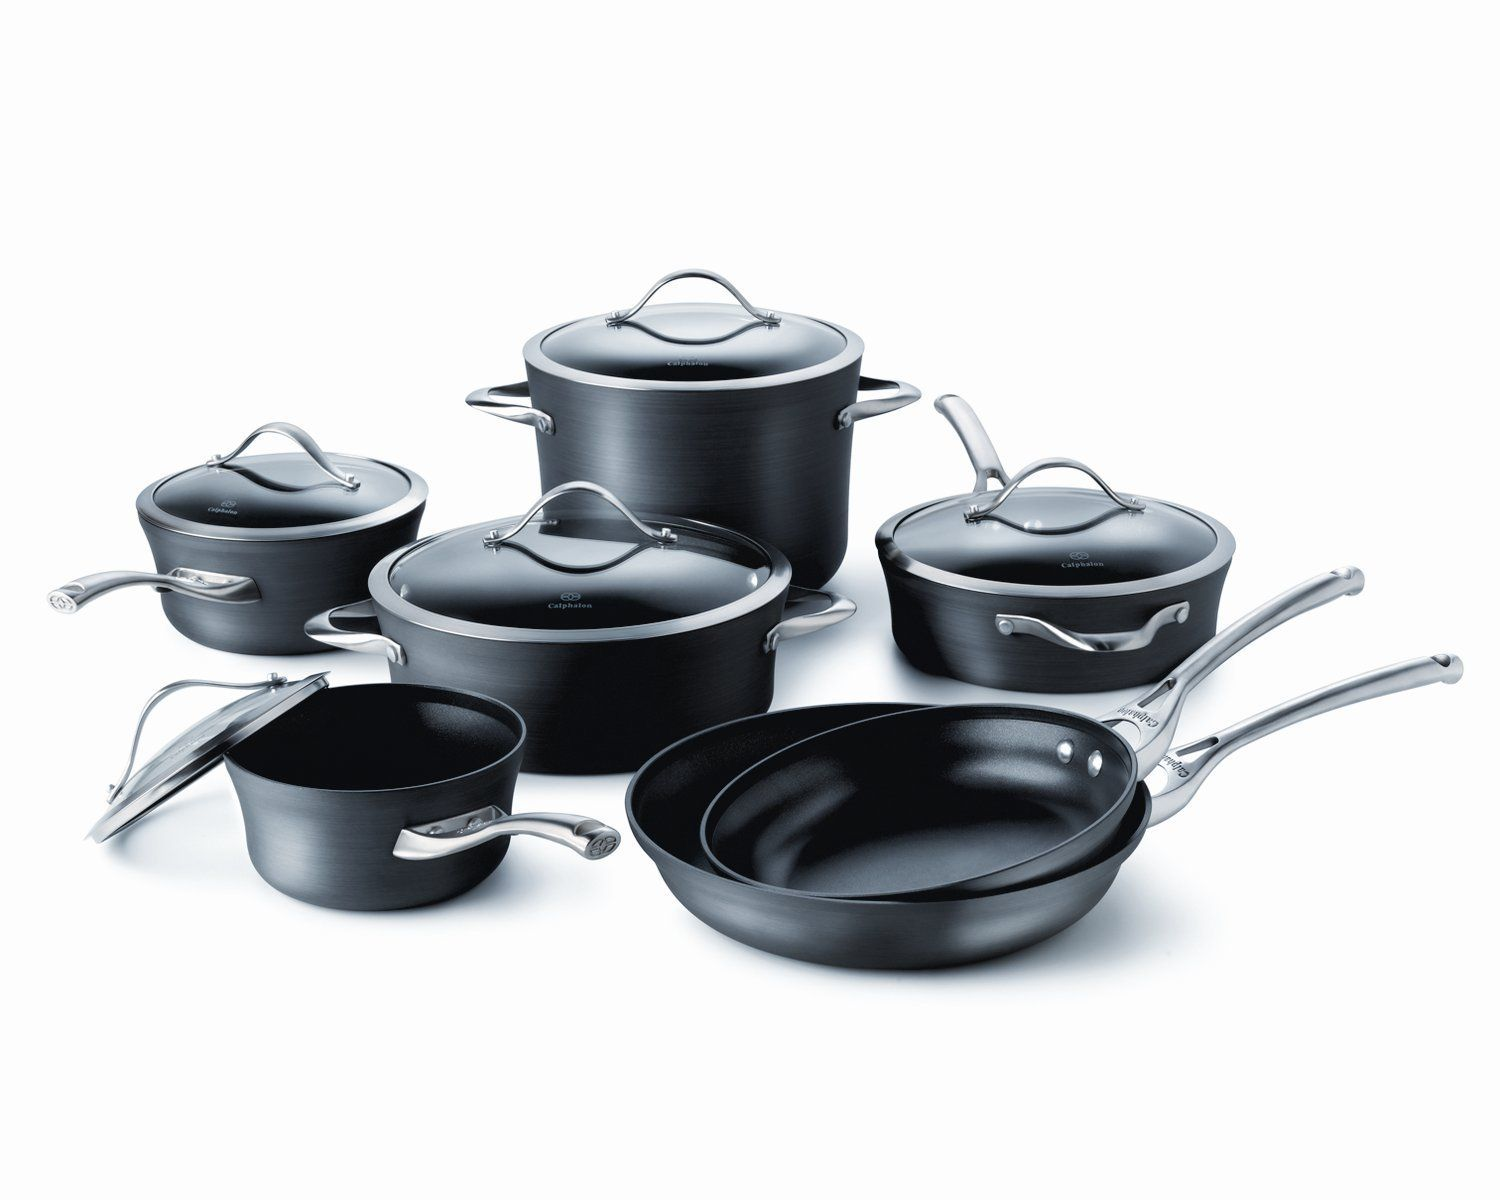 Calphalon Contemporary Nonstick 12 Piece Set Want To Know More Click On The Image Hard Anodized Cookware Calphalon Cookware Dishwasher Safe Cookware Calphalon 12 piece nonstick cookware set